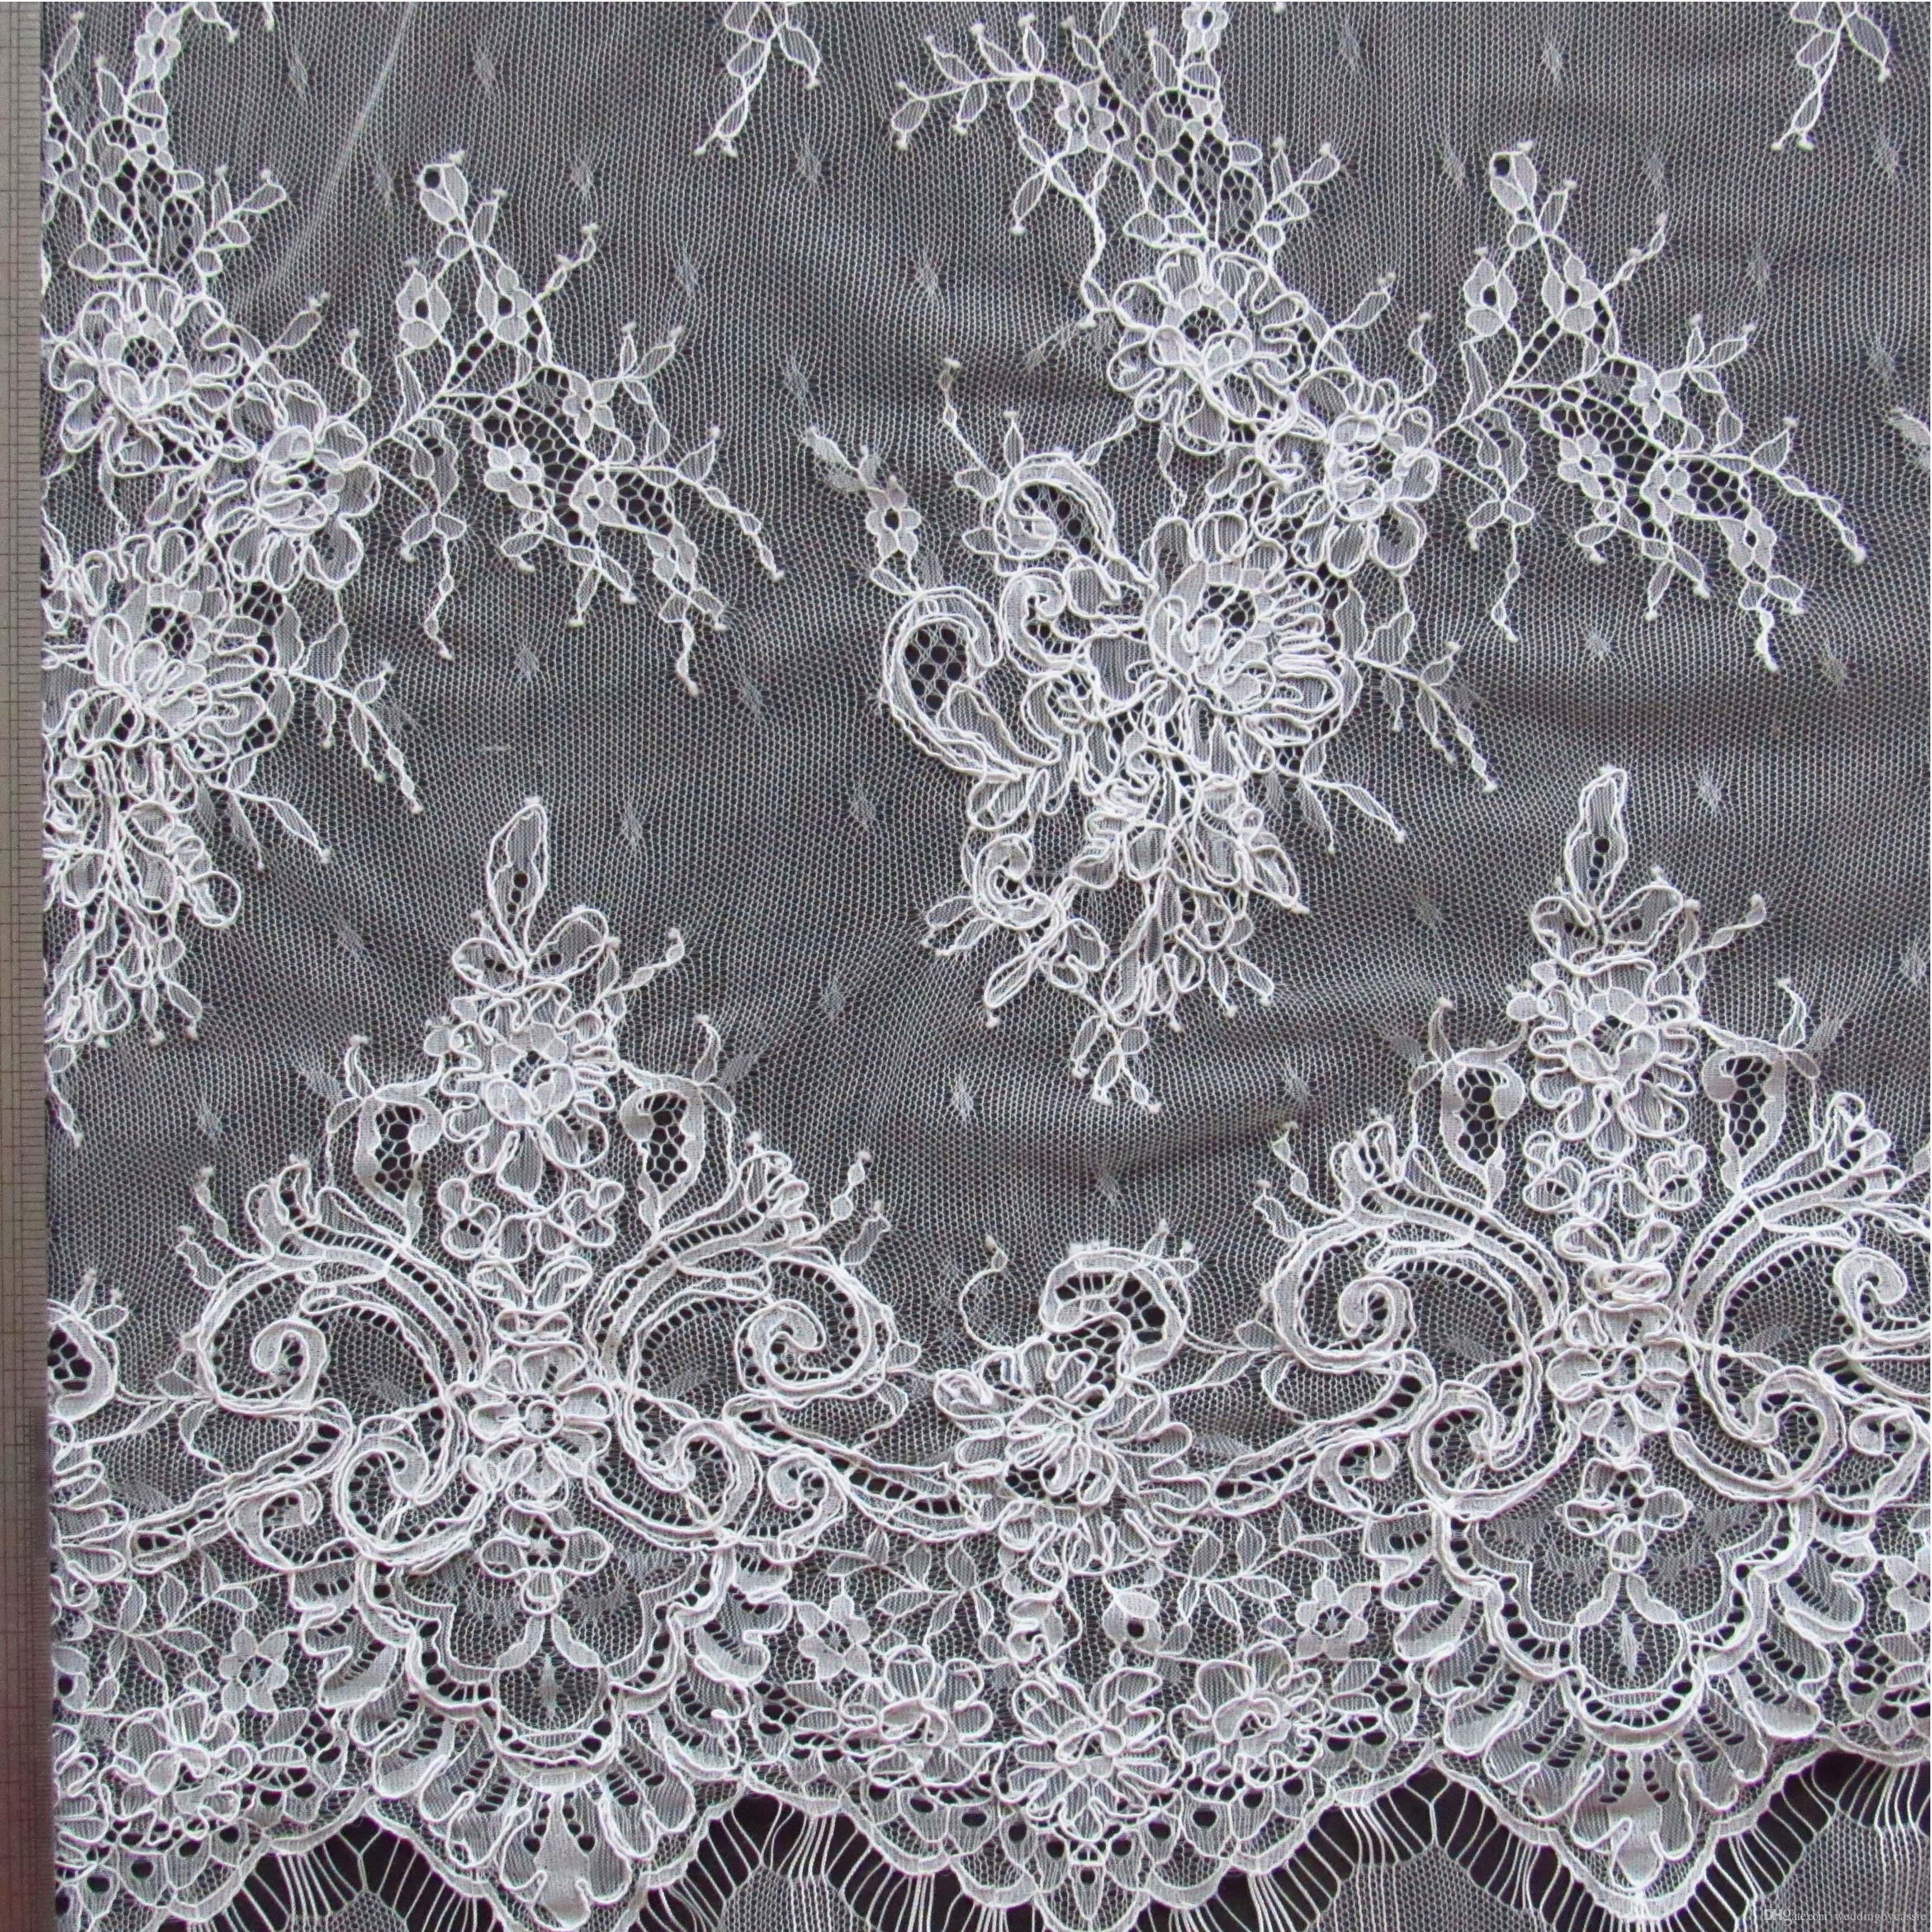 Wedding Dress Embroidery Patterns High Quality 3 Meters White French Lace Wedding Dress Gauze Clothing Fabric Materials Dz05